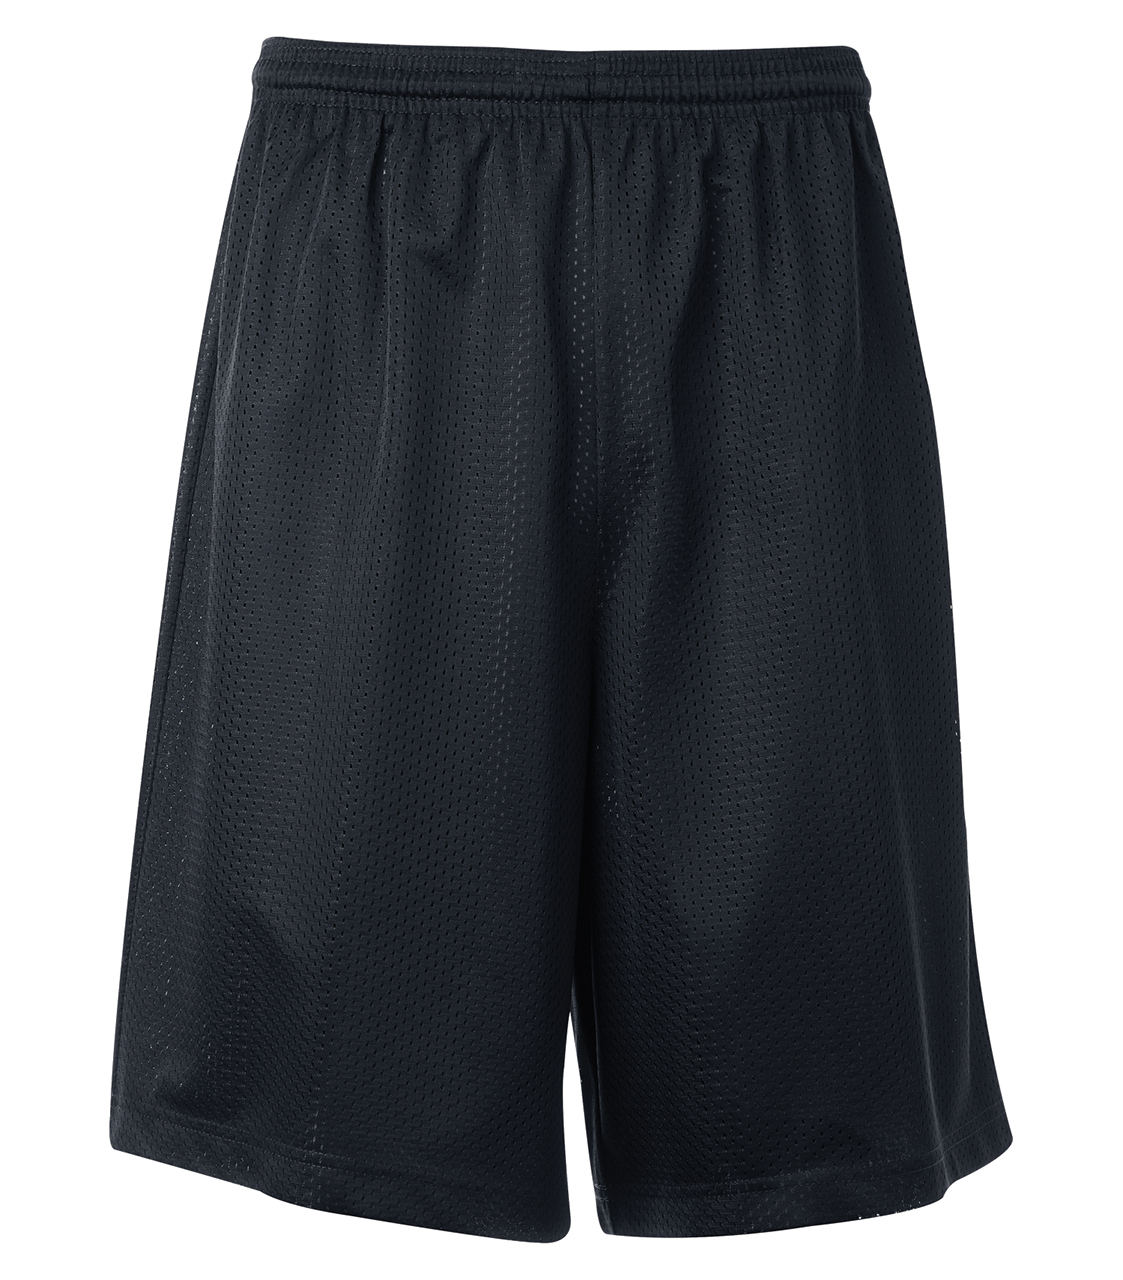 Picture of ATC Pro Mesh Youth Shorts